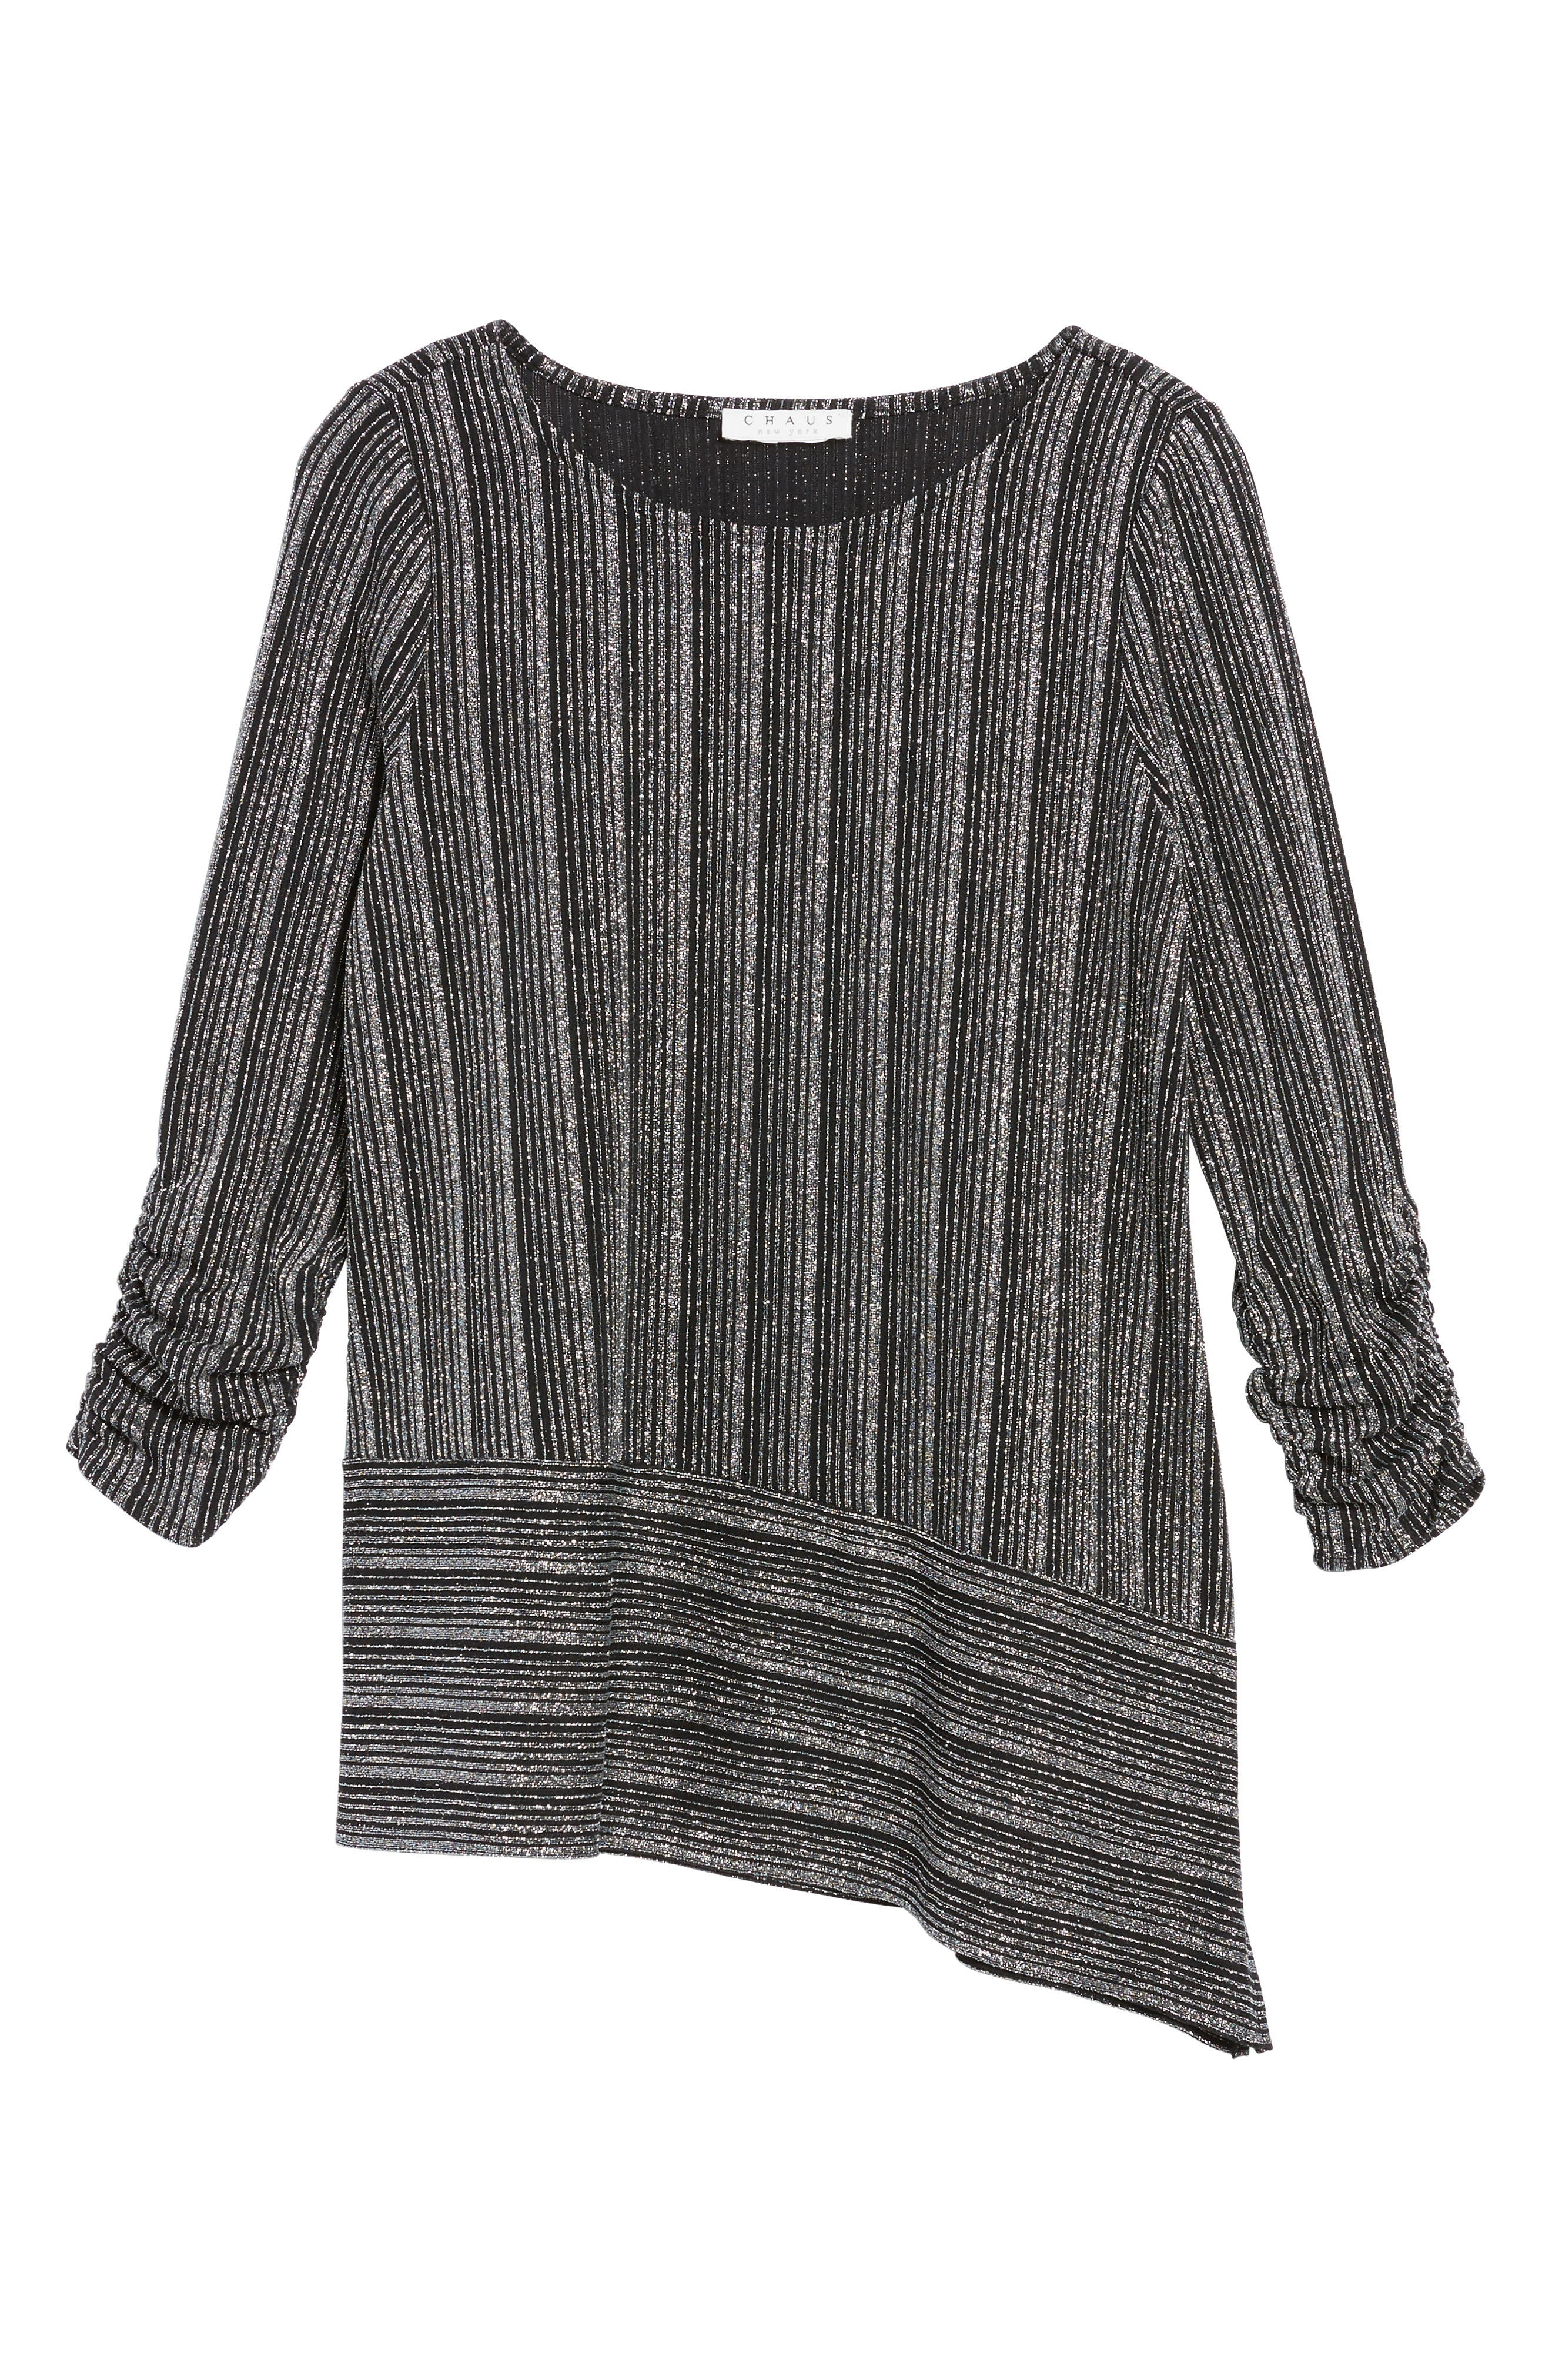 Metallic Stripe Asymmetrical Top,                             Alternate thumbnail 6, color,                             040